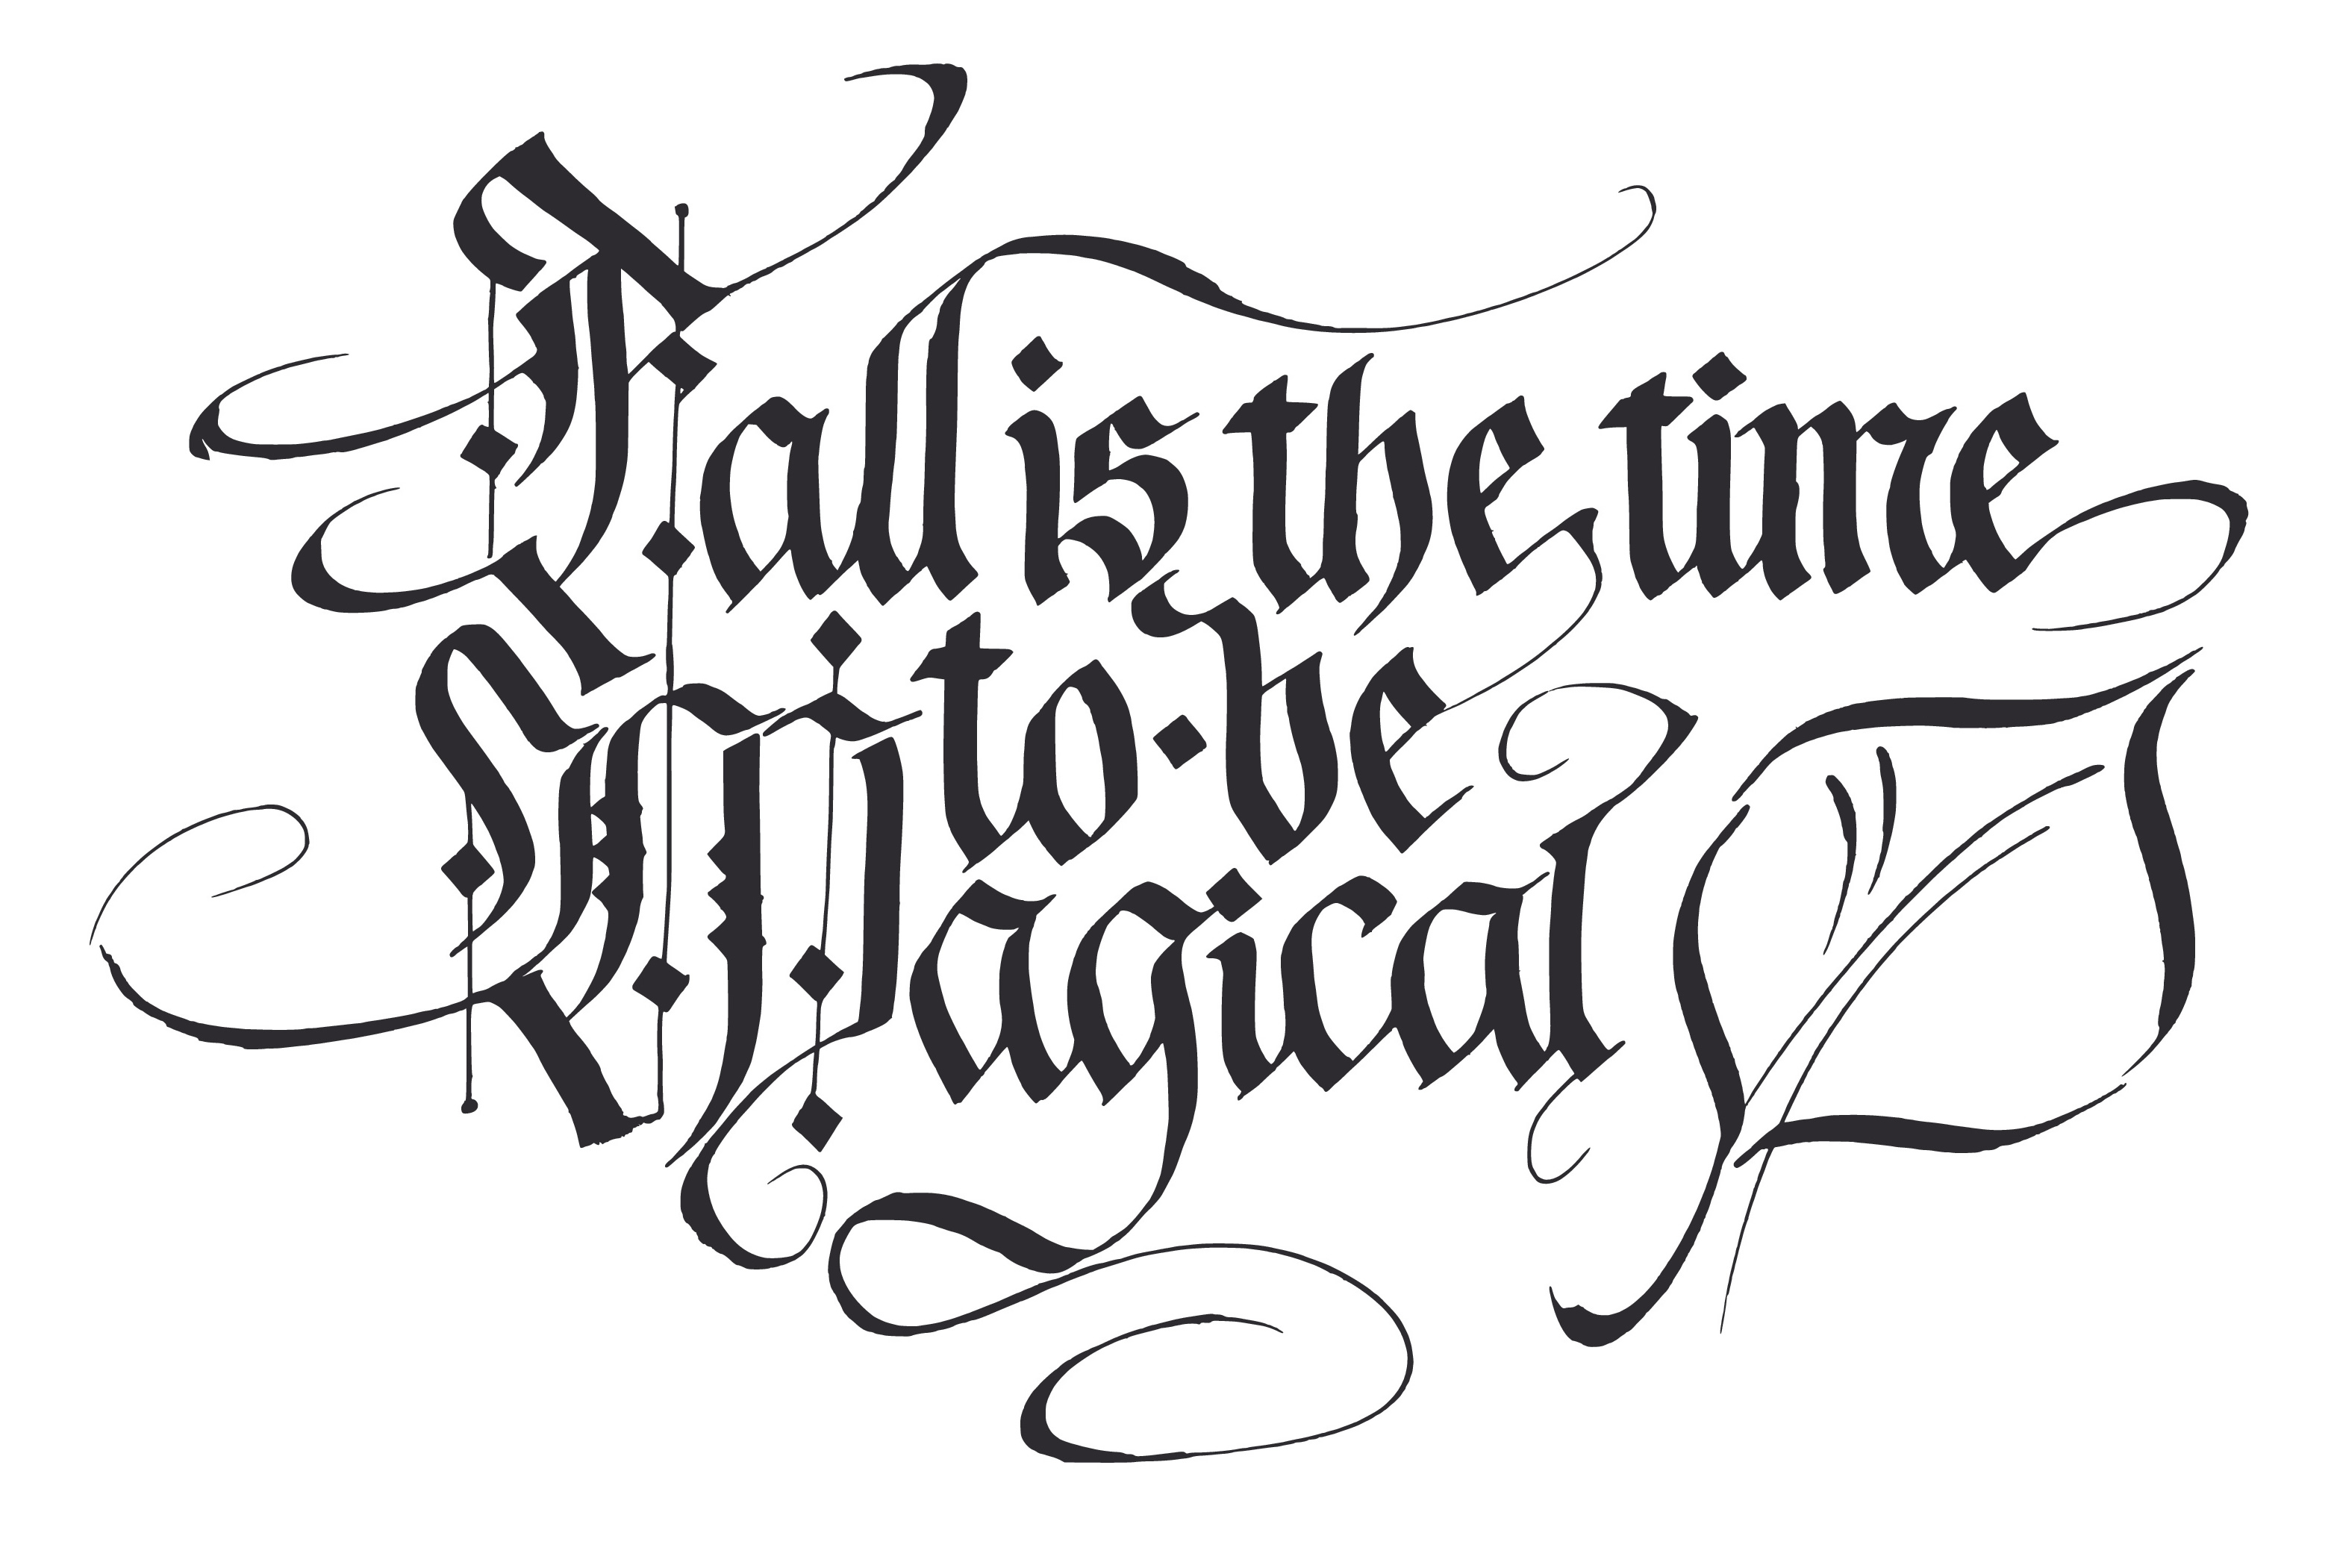 Calligraphy Message-copyrighted image